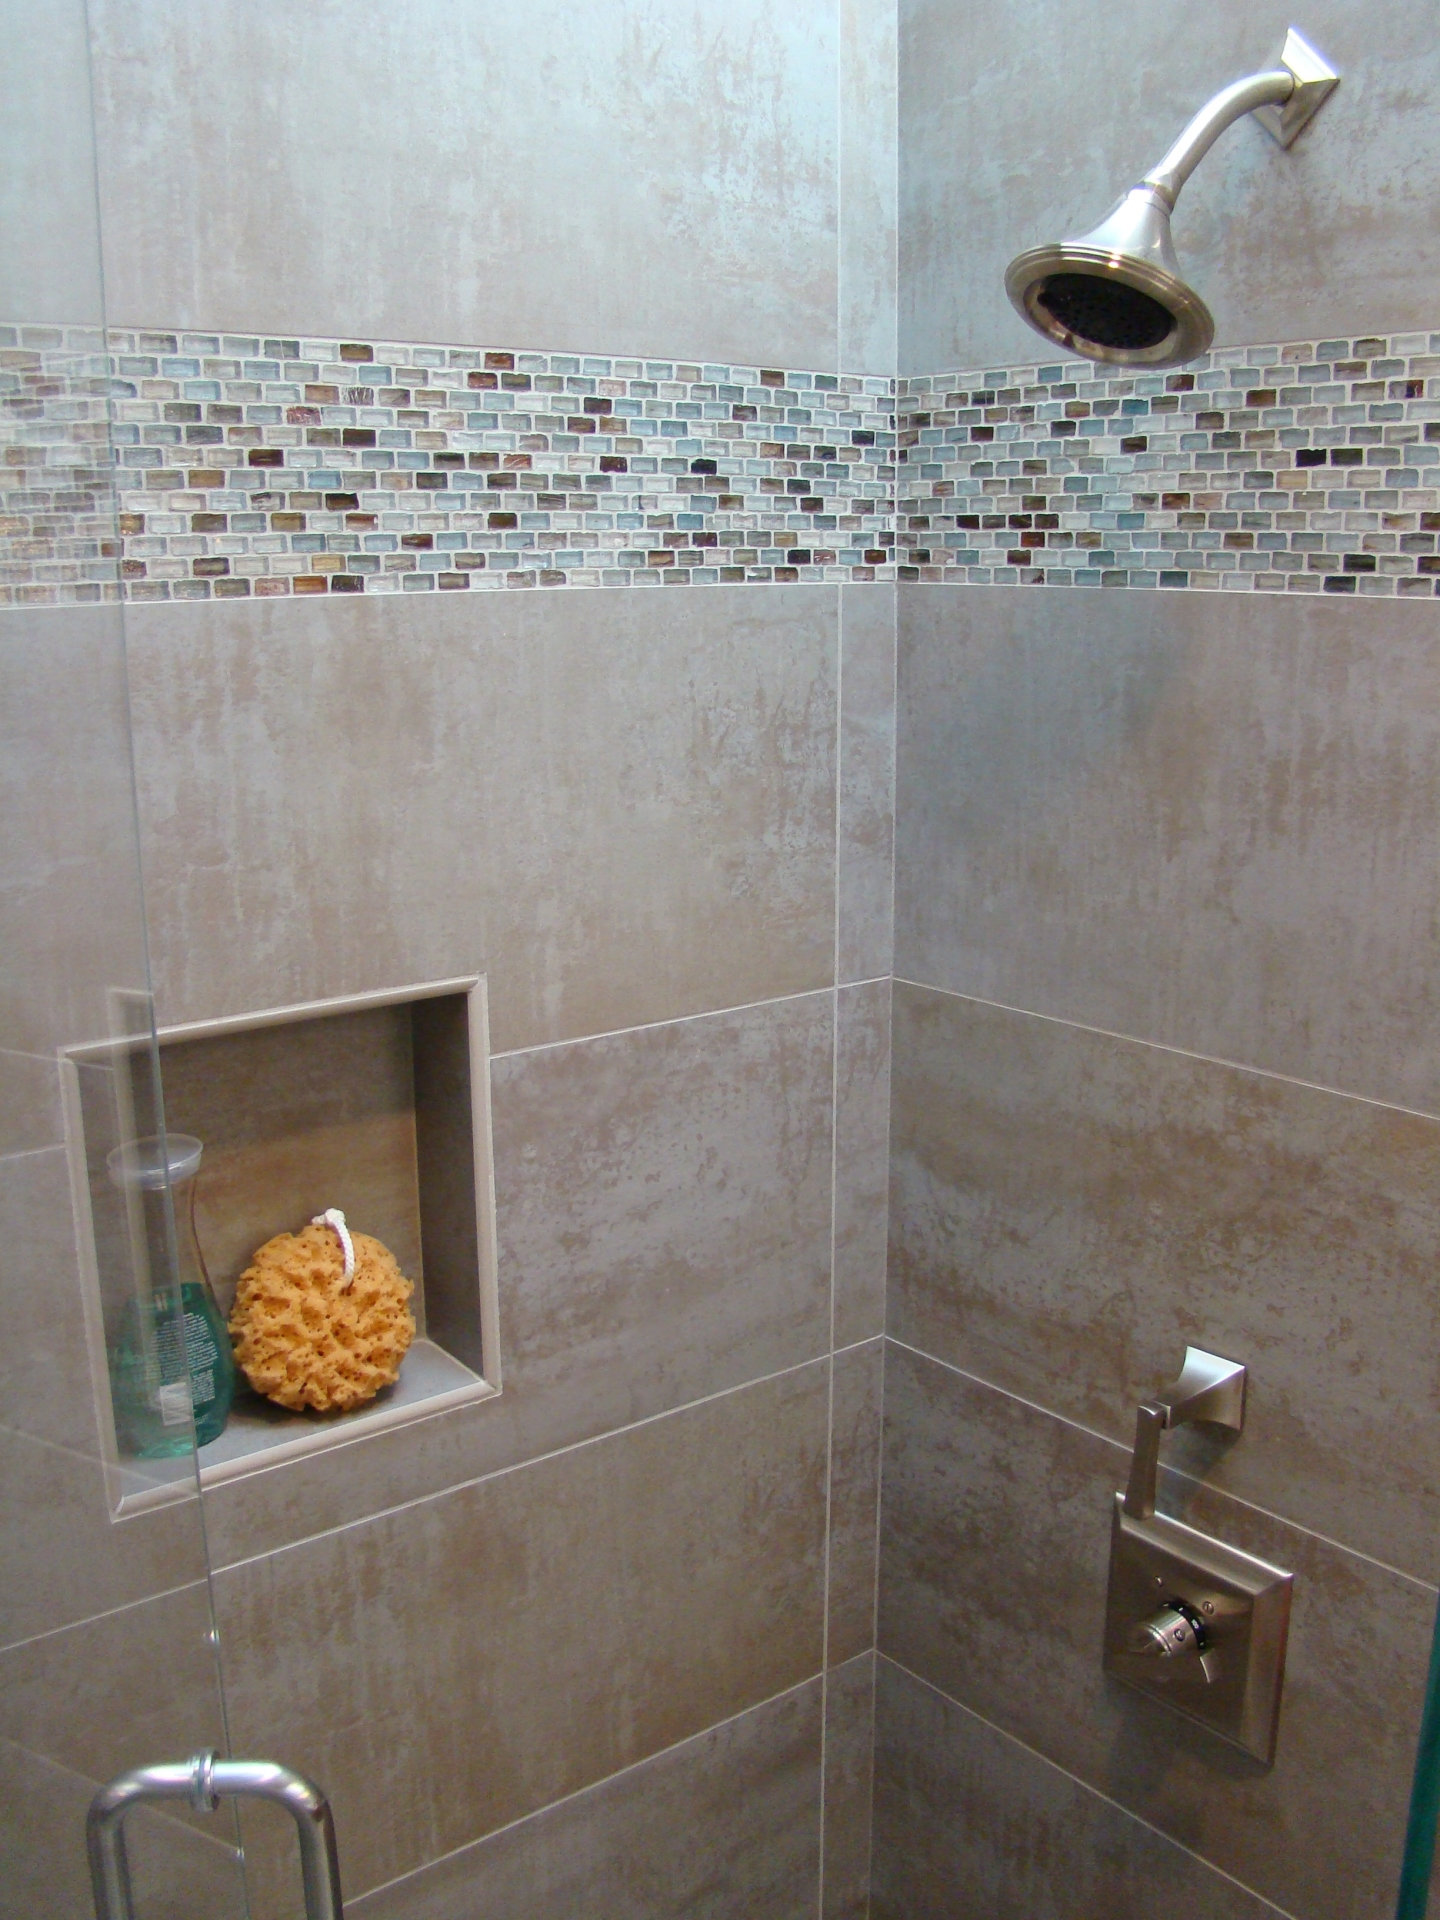 Fiorito Interior Design, interior design, remodel, bathroom, transitional, shower, glass mosaic